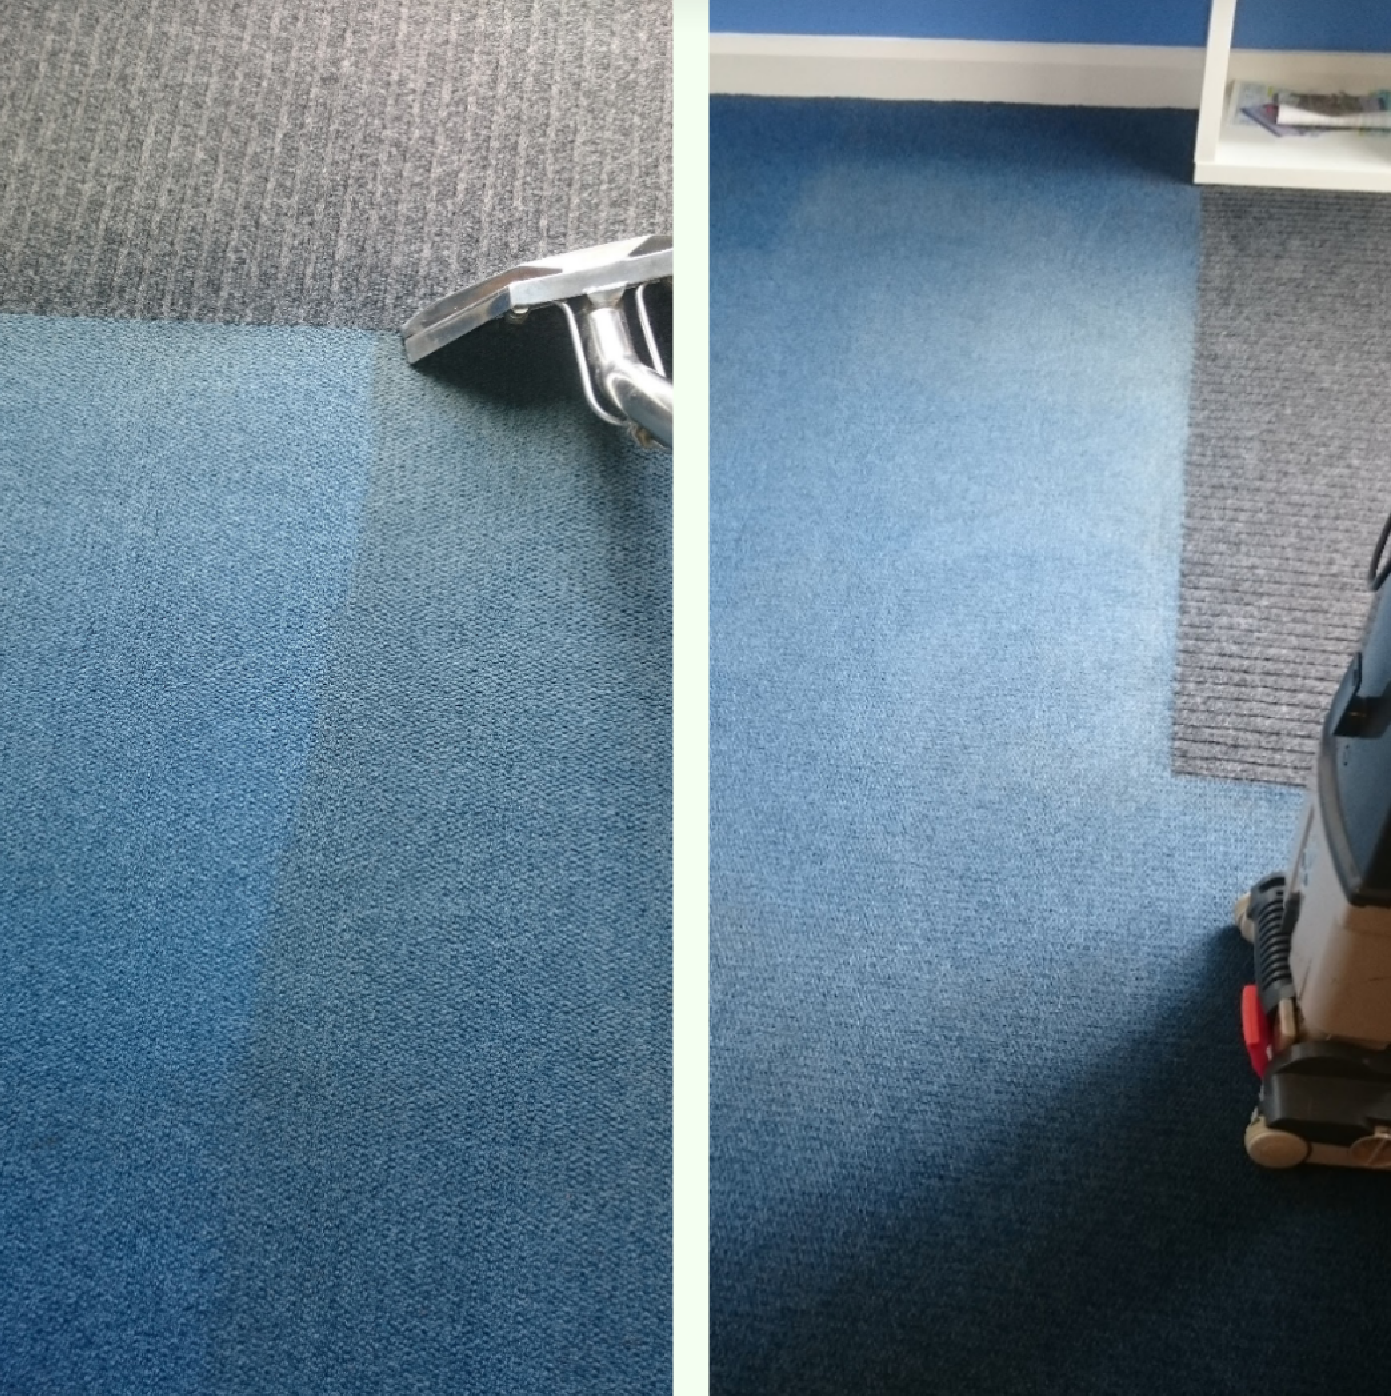 Primary School Carpet Cleaning